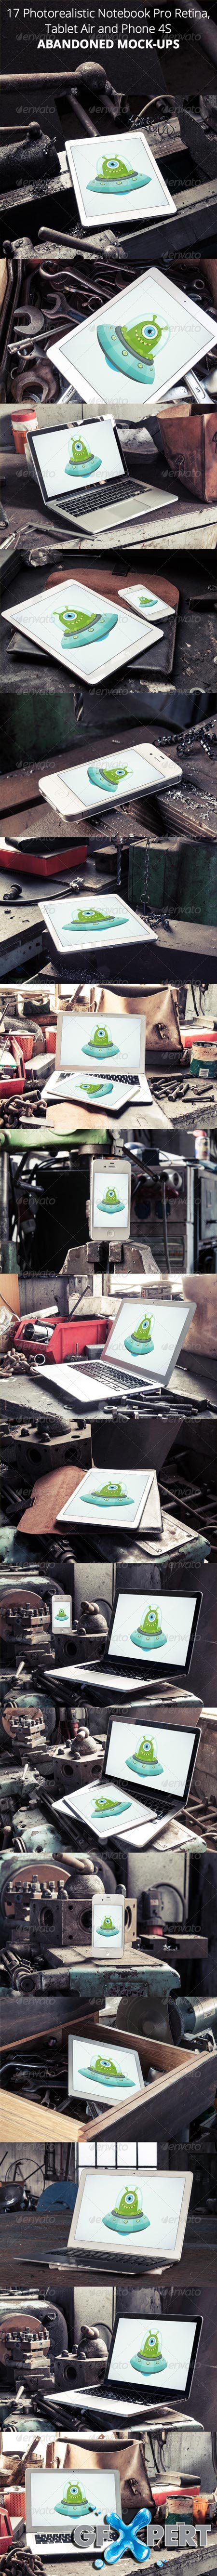 GraphicRiver 17 Photorealistic Devices Mock-Ups Abandoned Place 7365563